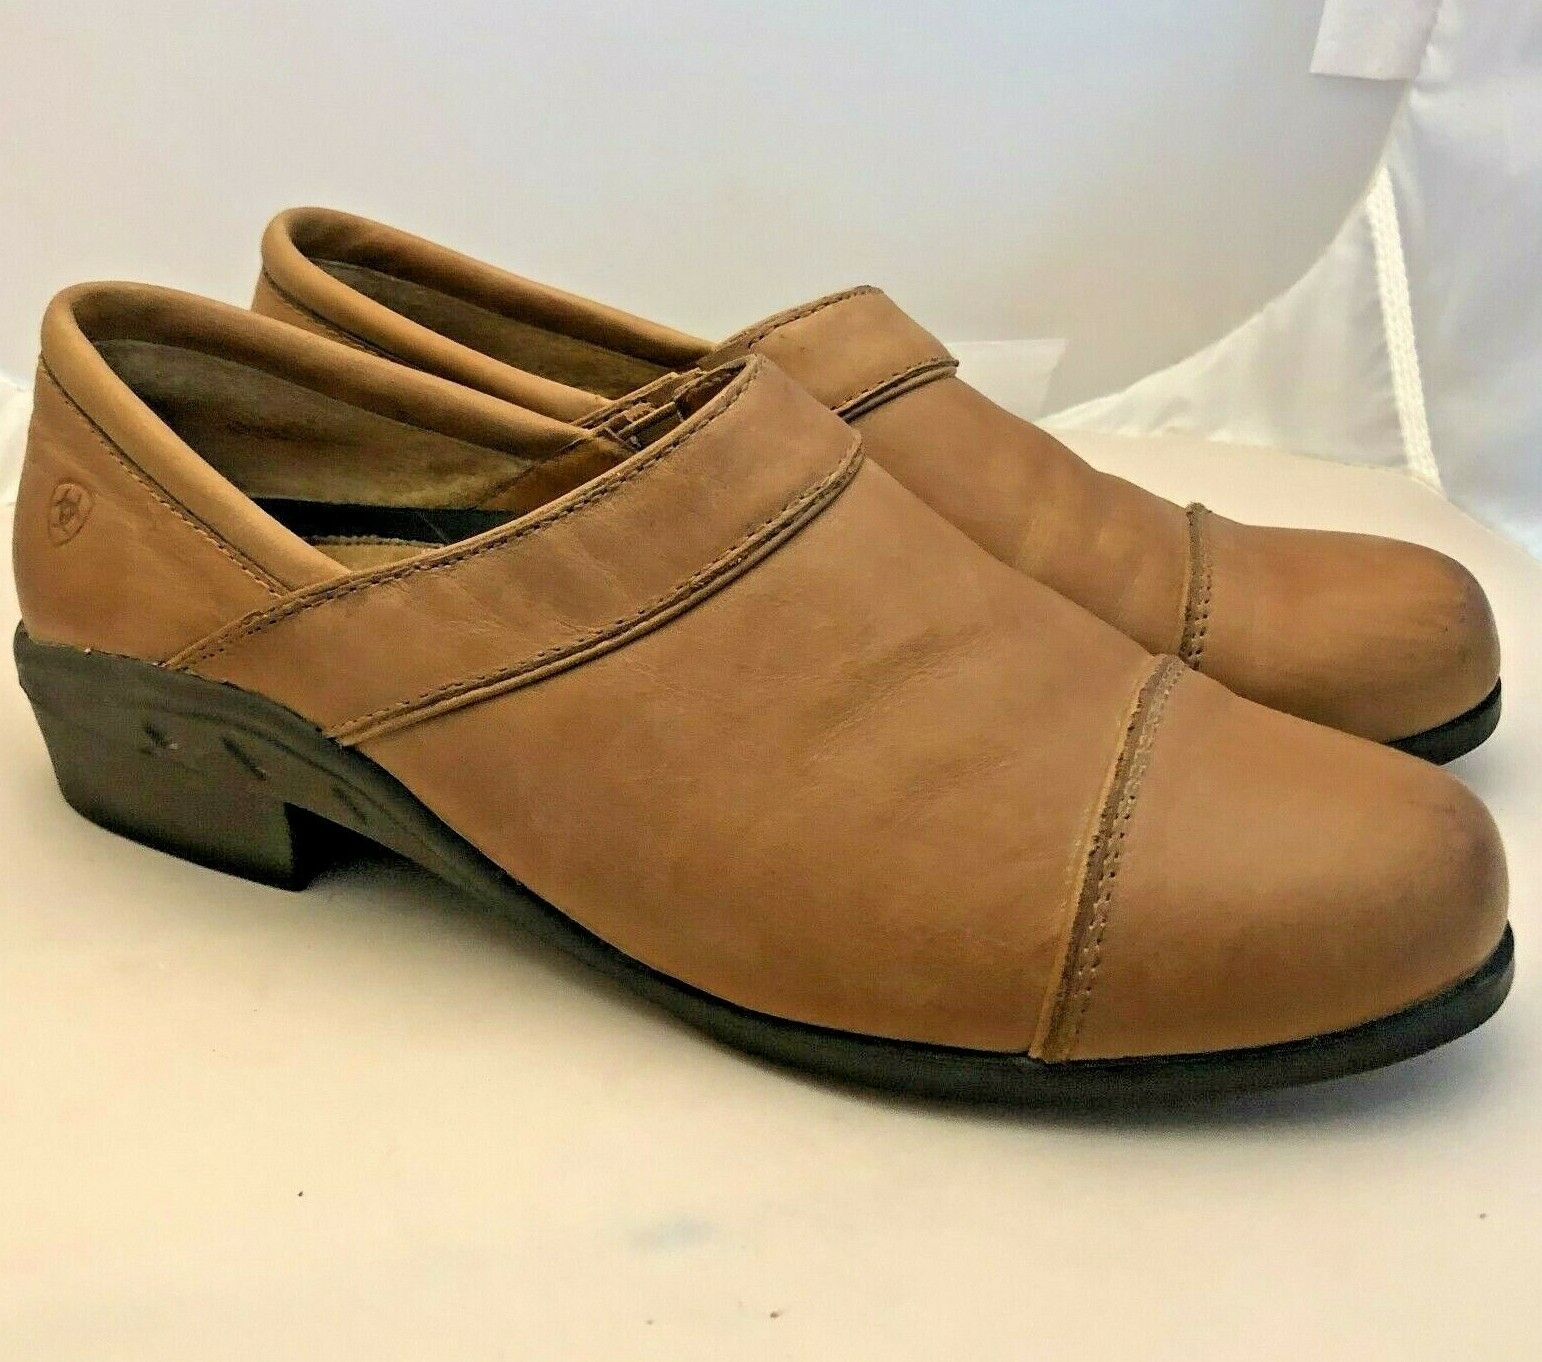 Women's 8.5 B M Ariat Sport Clog Tan Brown Leather Cap Toe Shoes Slip-On Loafers